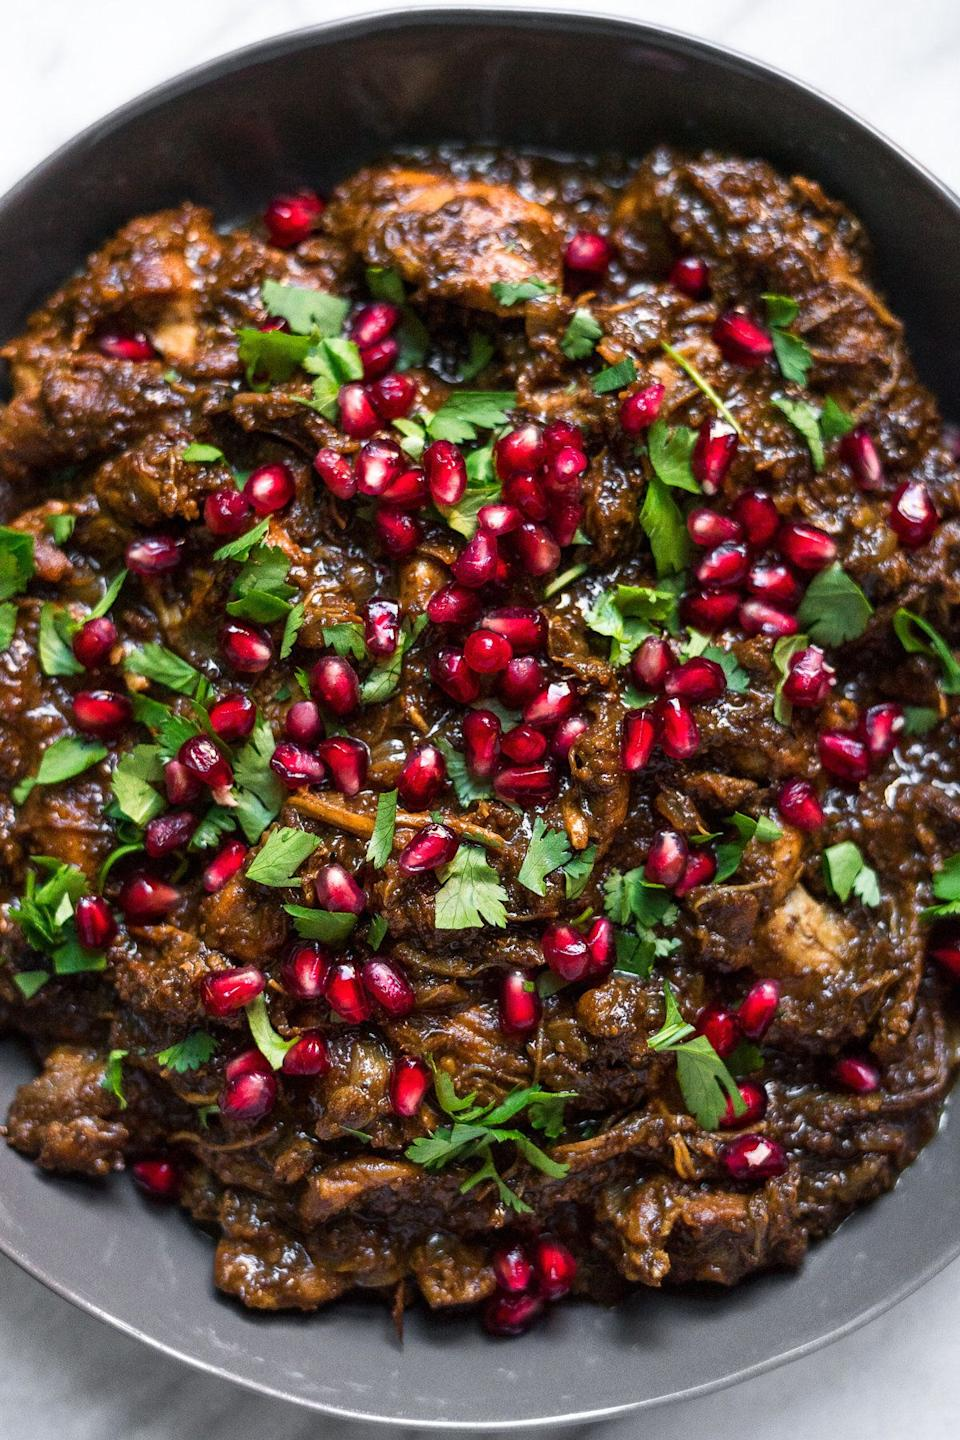 "<strong>Get the <a href=""http://acalculatedwhisk.com/instant-pot-fesenjan/"" rel=""nofollow noopener"" target=""_blank"" data-ylk=""slk:Instant Pot Fesenjan (Persian Pomegranate Chicken)"" class=""link rapid-noclick-resp"">Instant Pot Fesenjan (Persian Pomegranate Chicken)</a> recipe from A Calculated Whisk.</strong>"